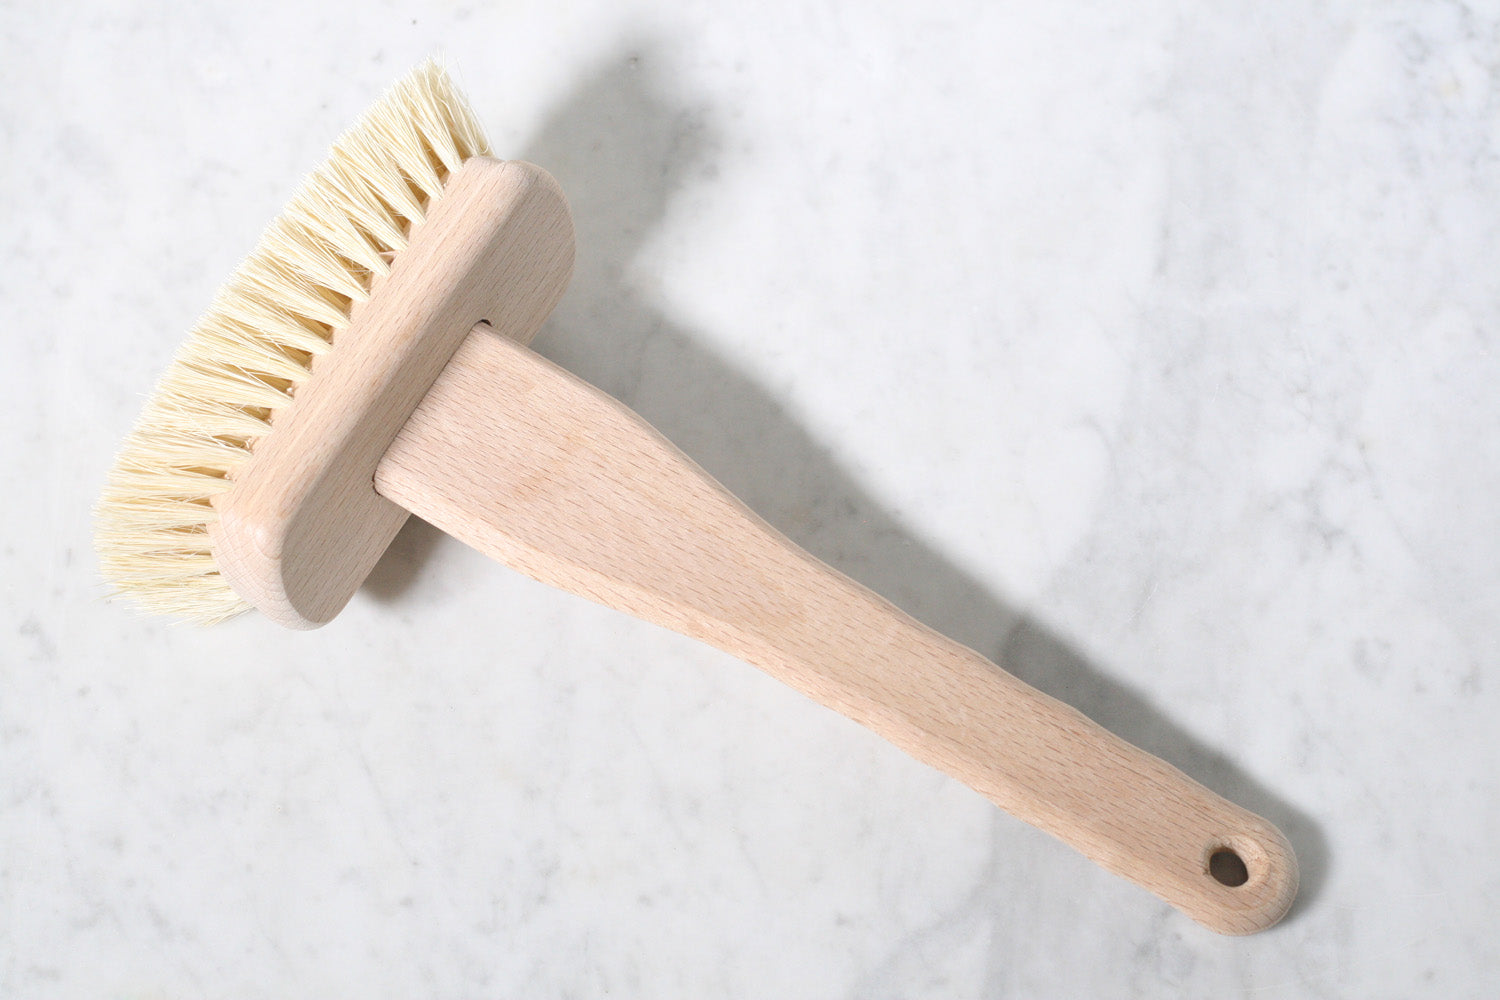 Burstenhaus Redecker Bathtub Brush